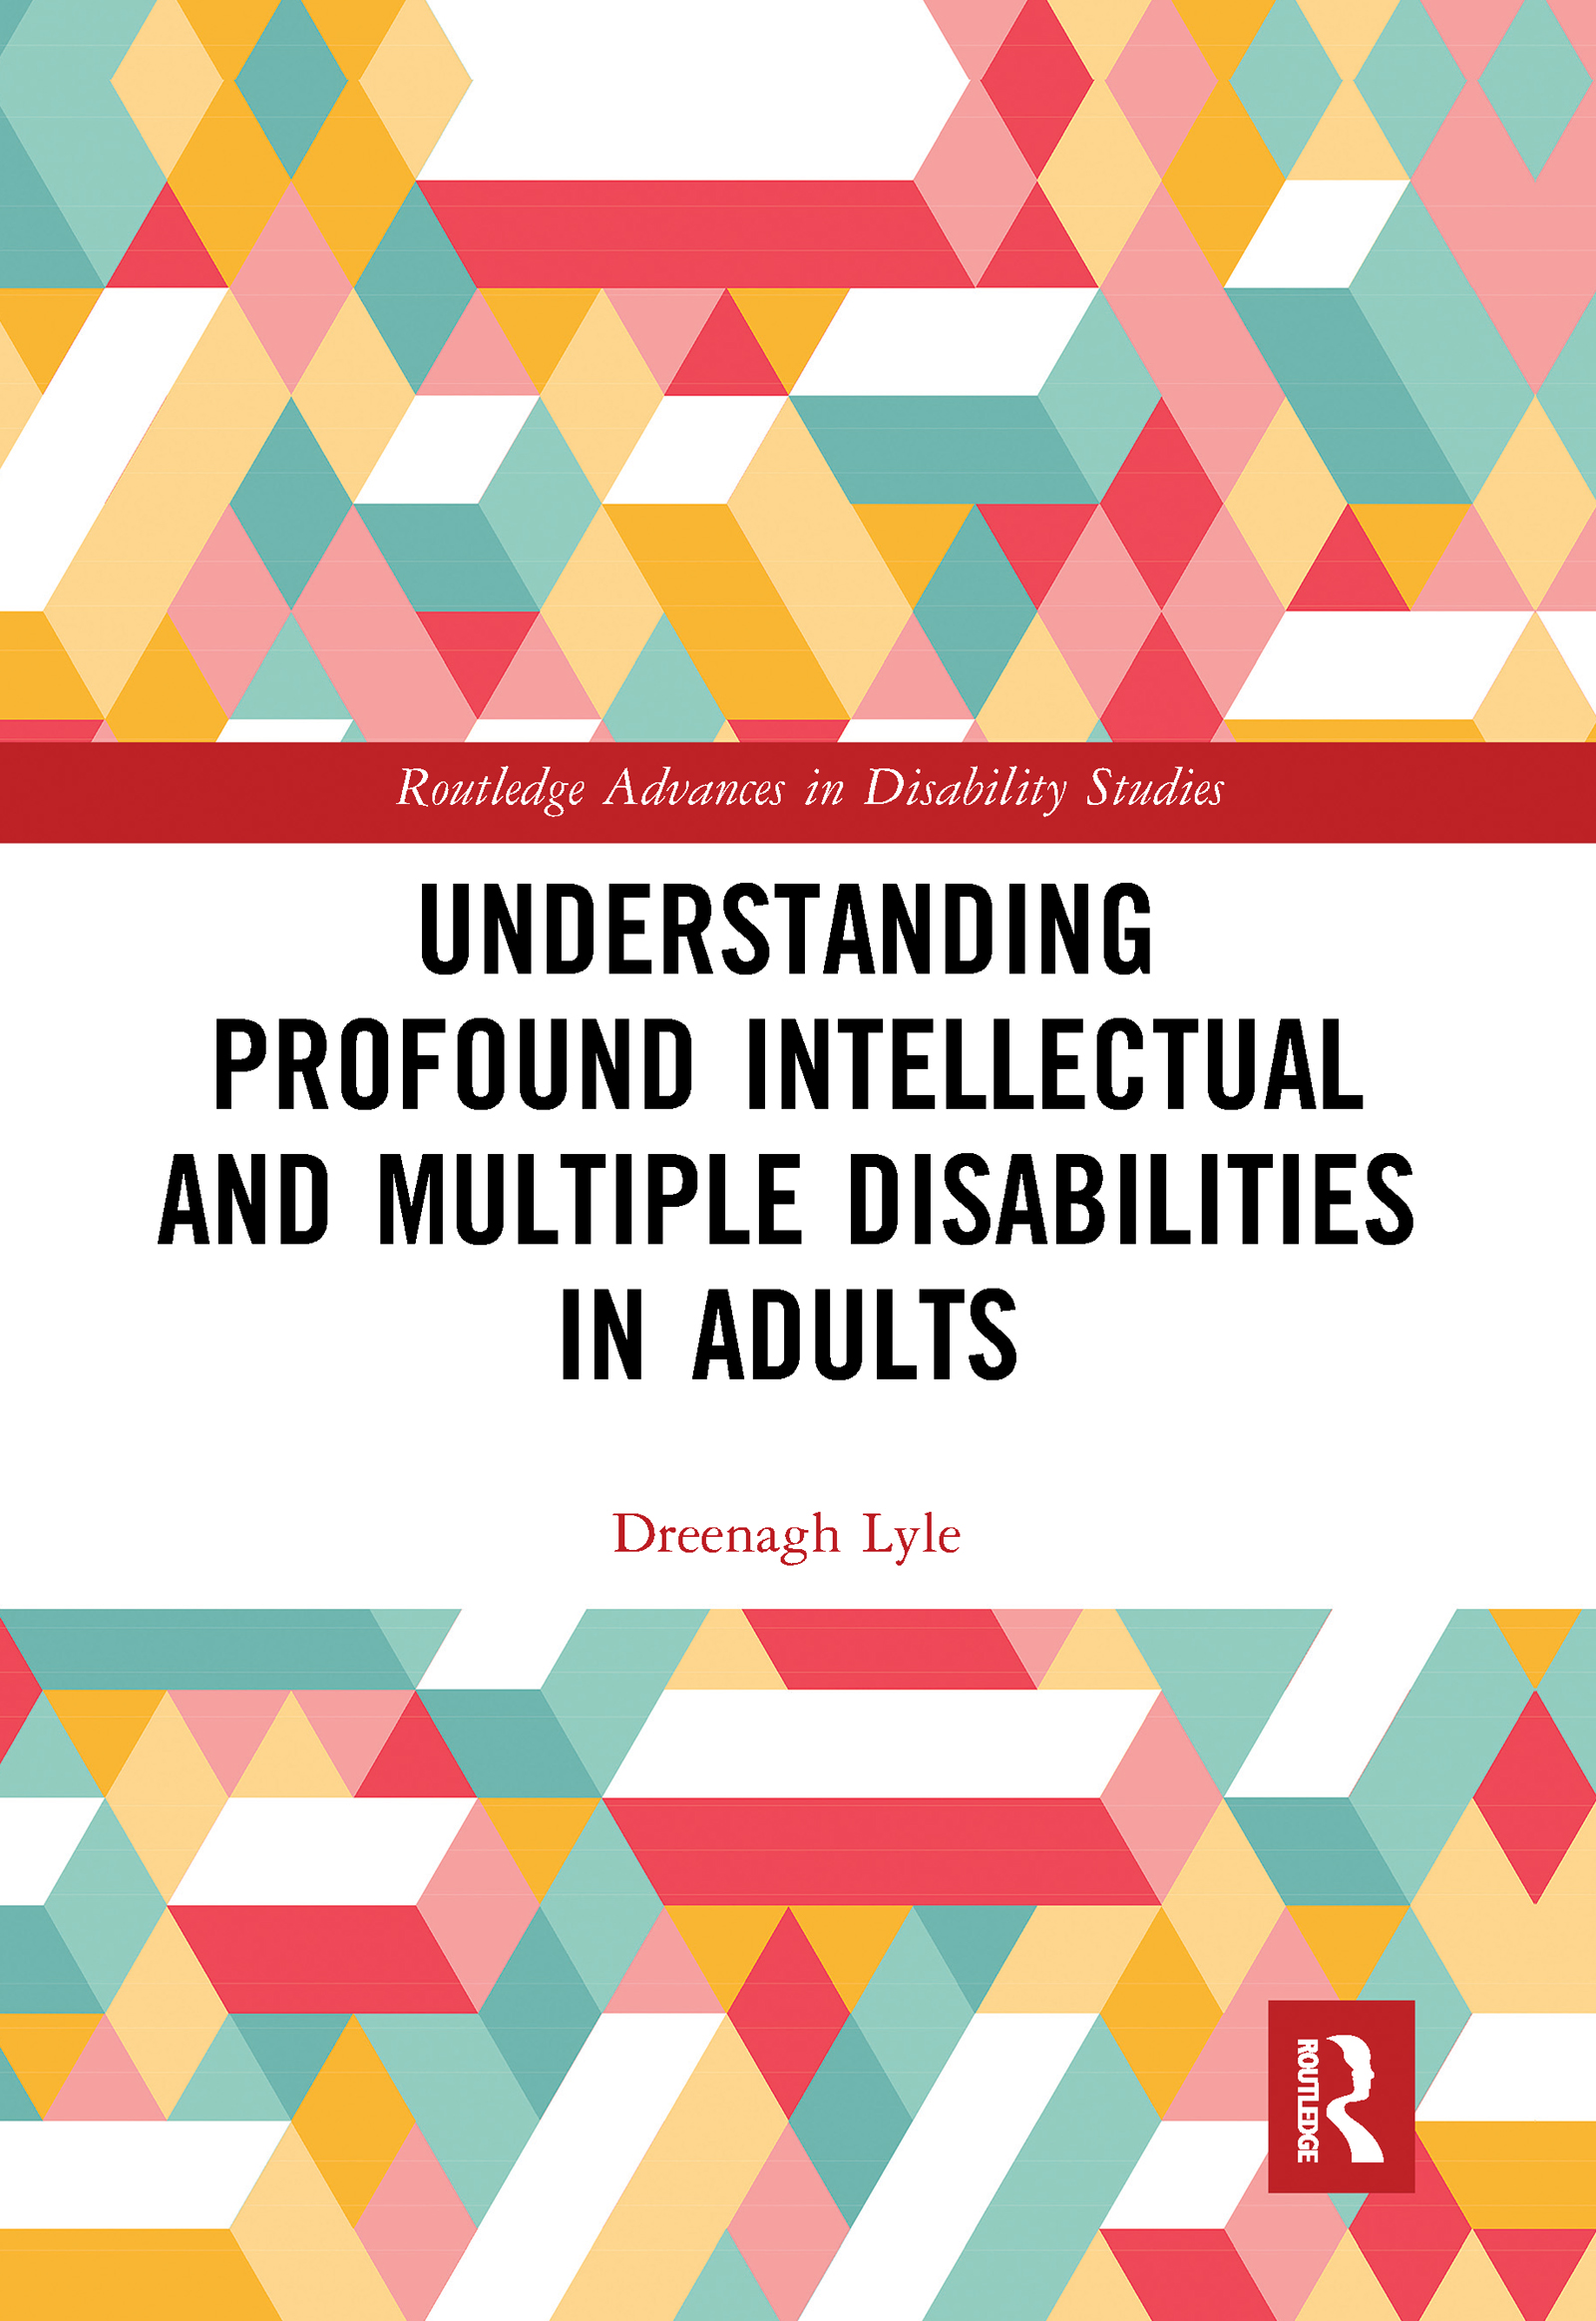 Understanding Profound Intellectual and Multiple Disabilities in Adults